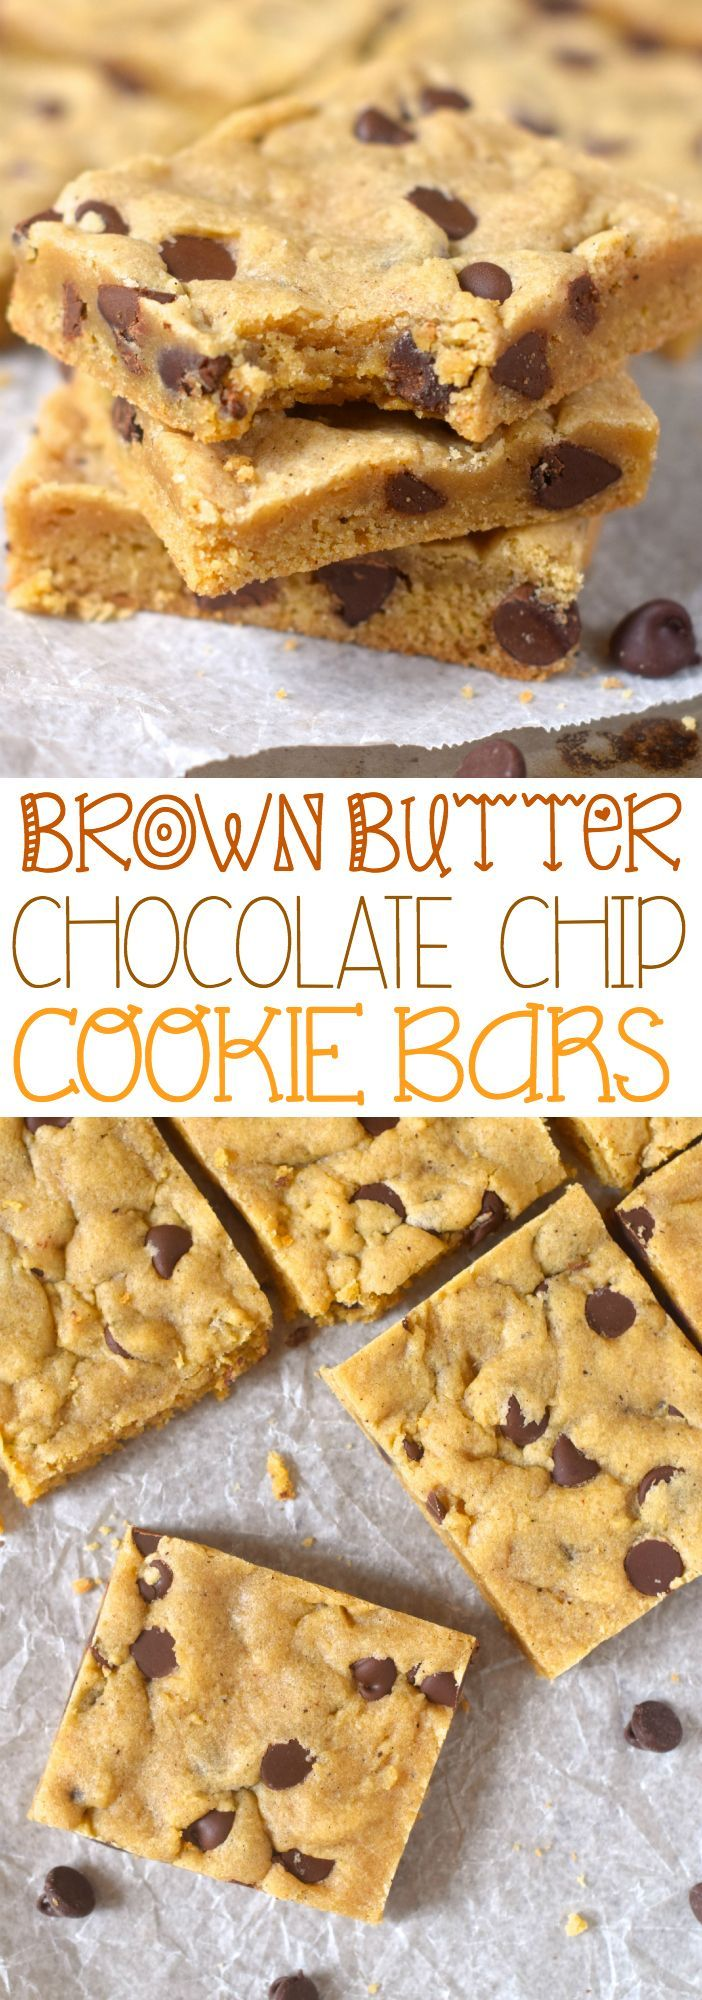 These Brown Butter Chocolate Chip Cookie Bars are insanely good! Like you cut off a slice and then suddenly the whole pan is gone good!